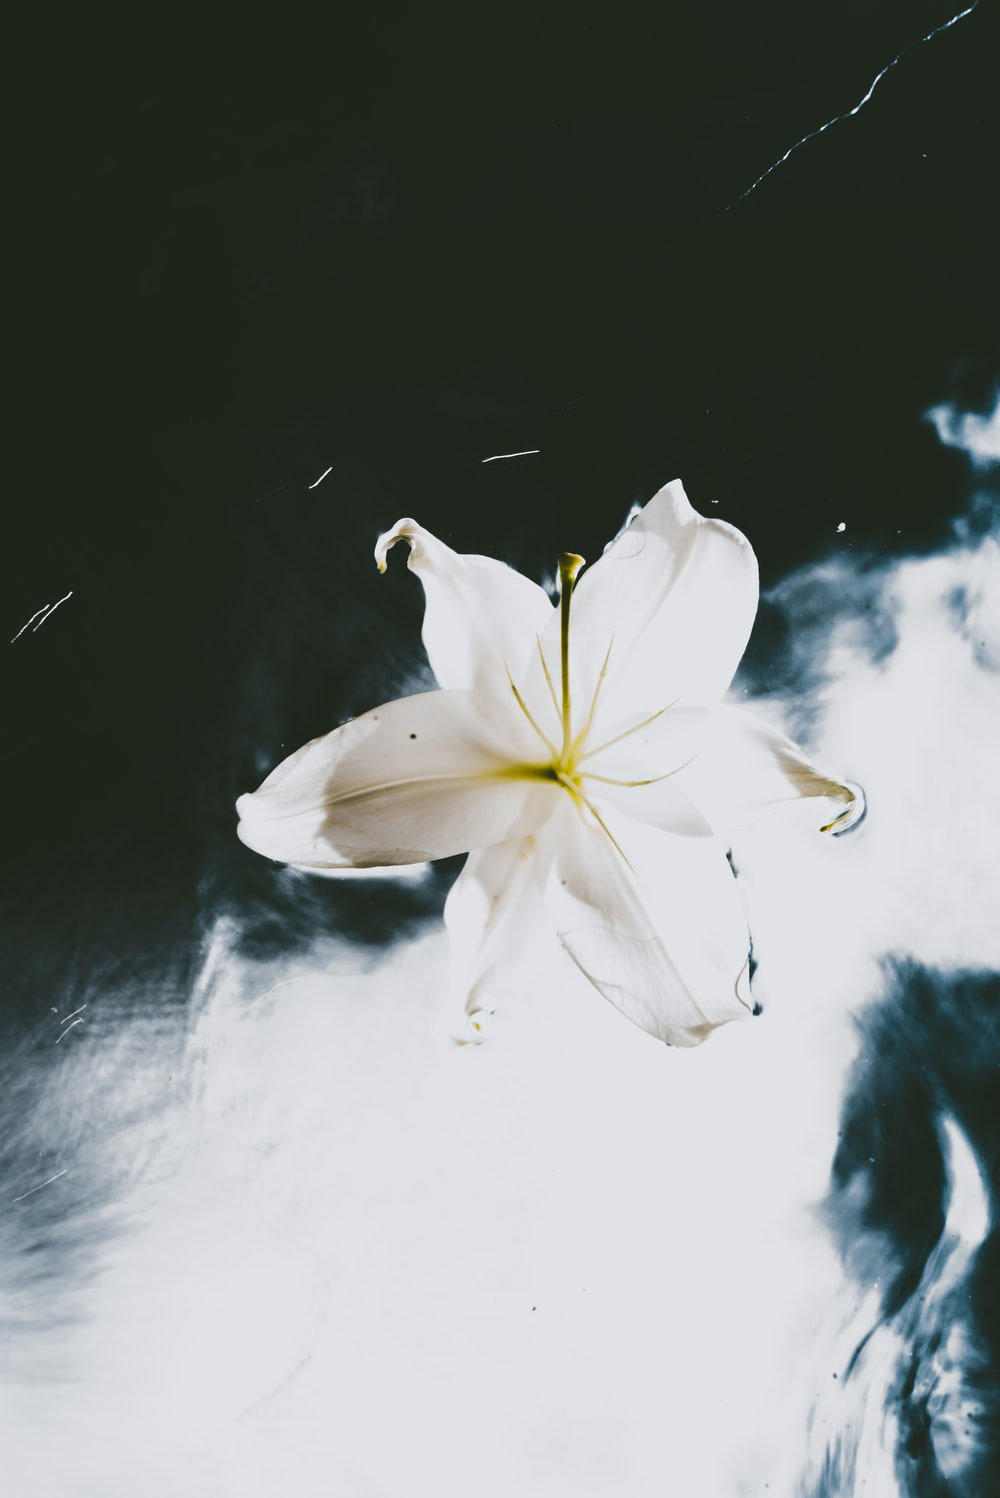 white and yellow flower on black surface